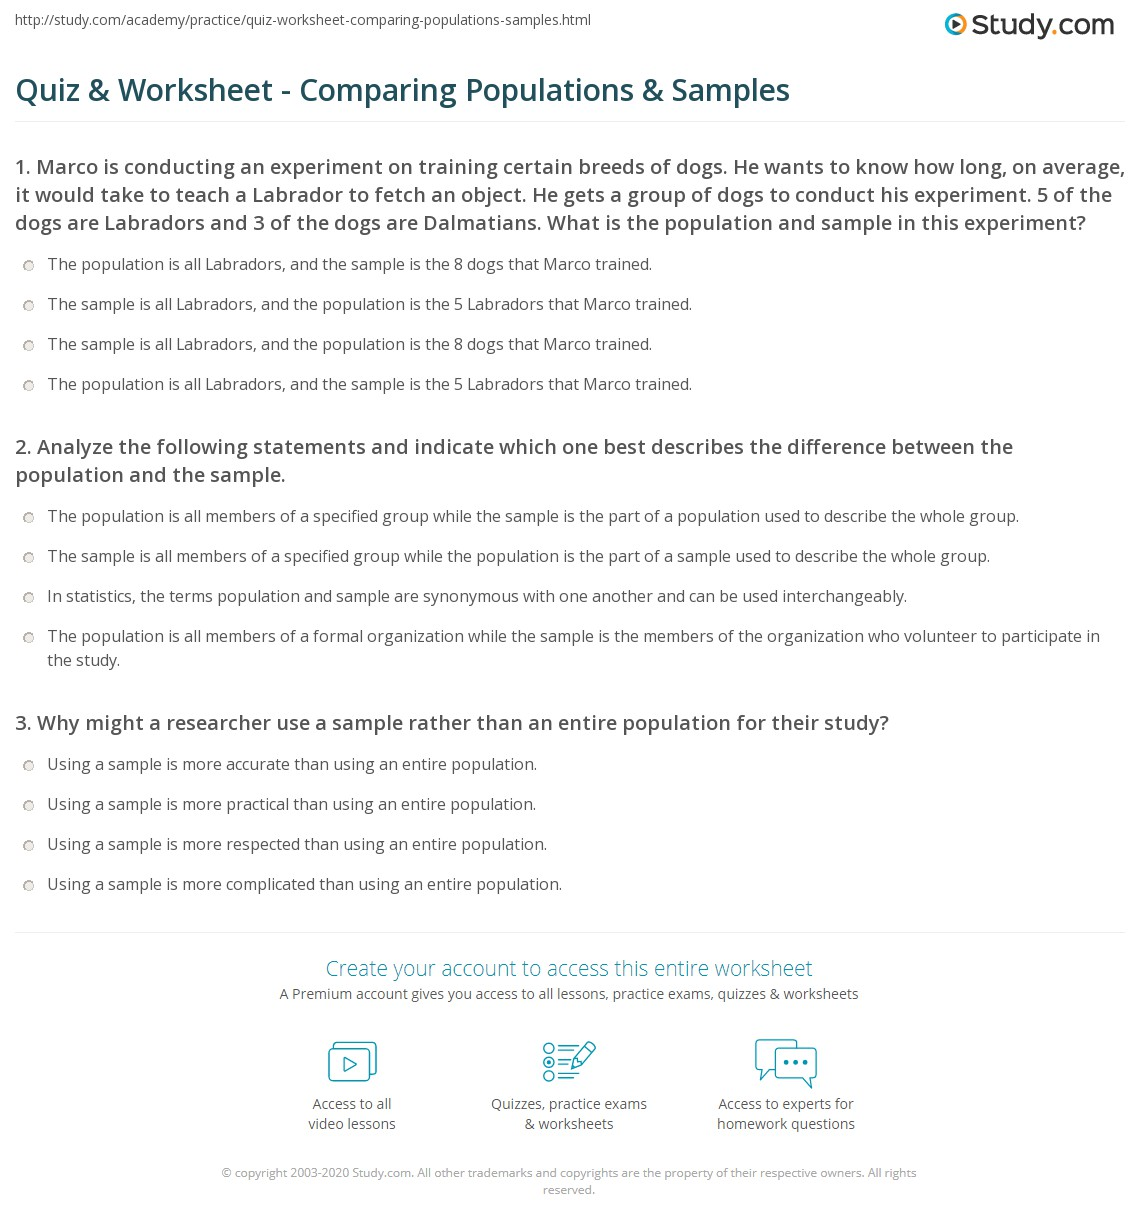 quiz worksheet comparing populations samples. Black Bedroom Furniture Sets. Home Design Ideas